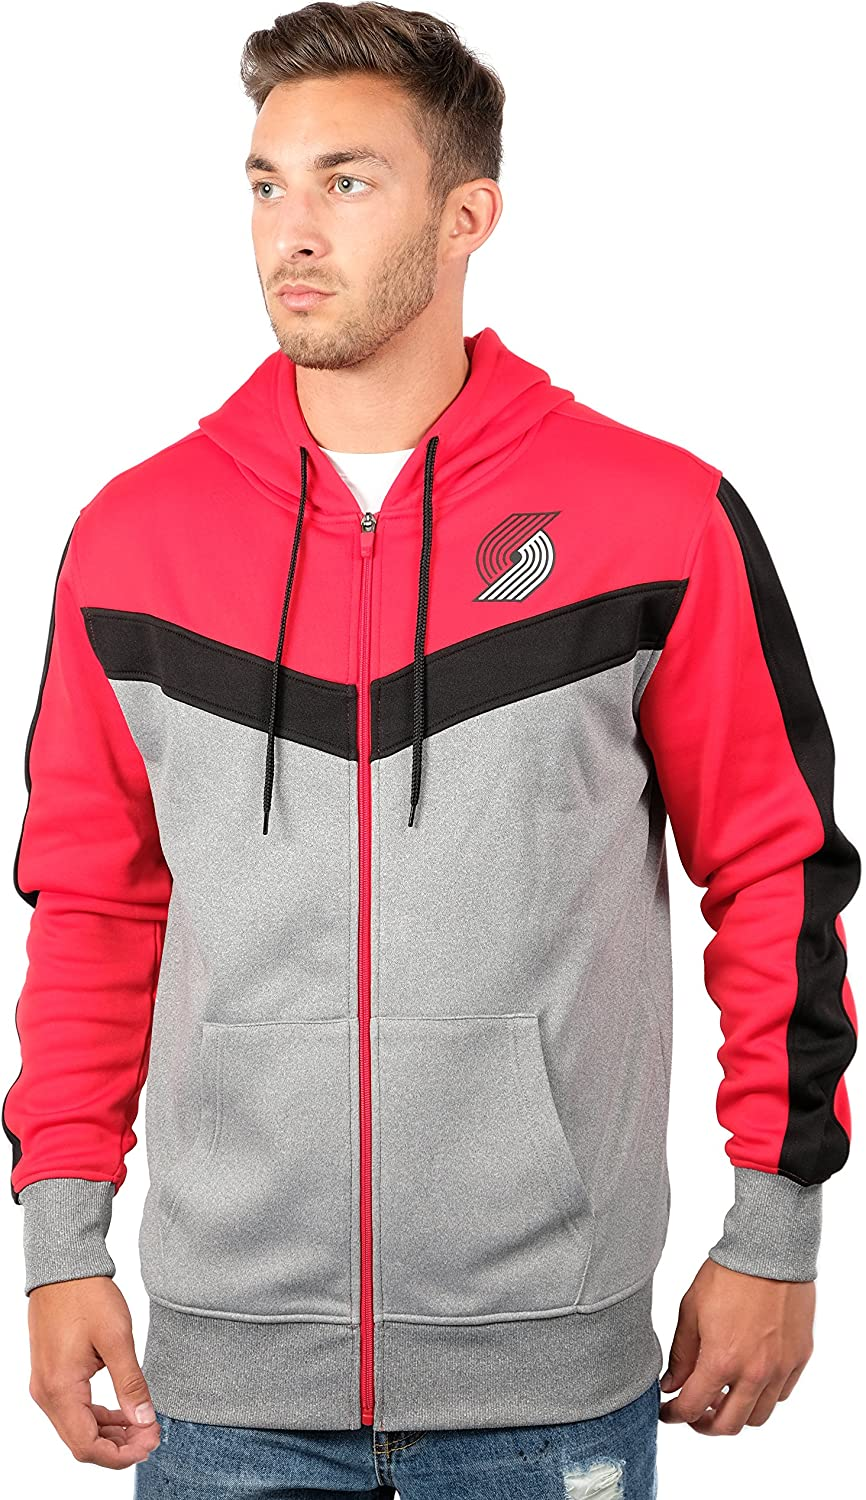 Unk NBA GZM2948F NBA Men's Back Cut Team color Contrast Full Zip Hoodie, Red, Large